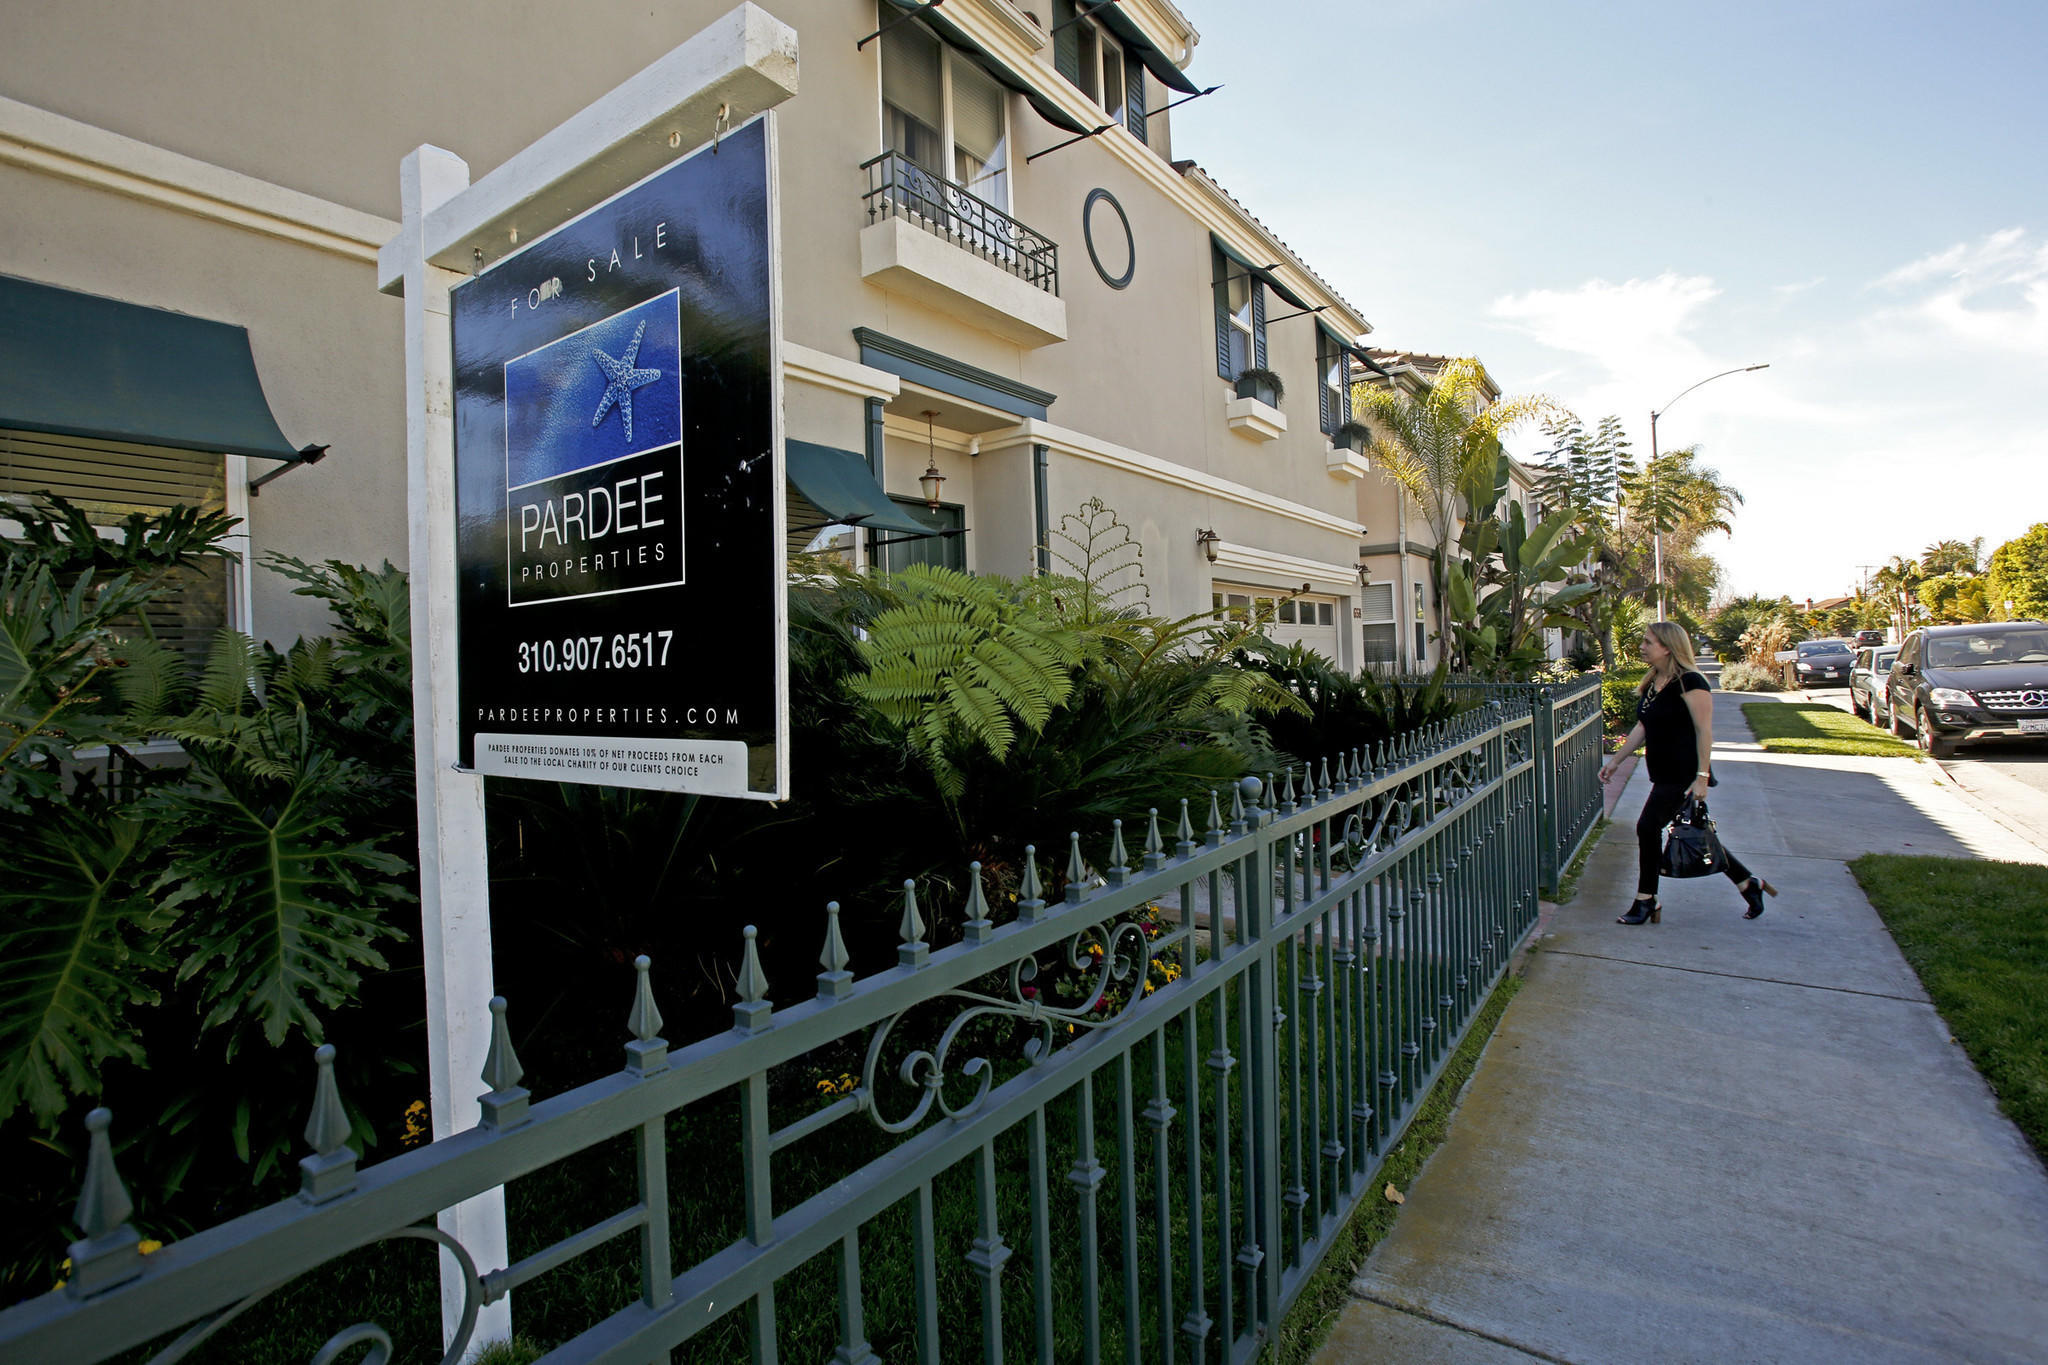 An Open House At A Home For Sale In Venice In 2014 (anne Cusack